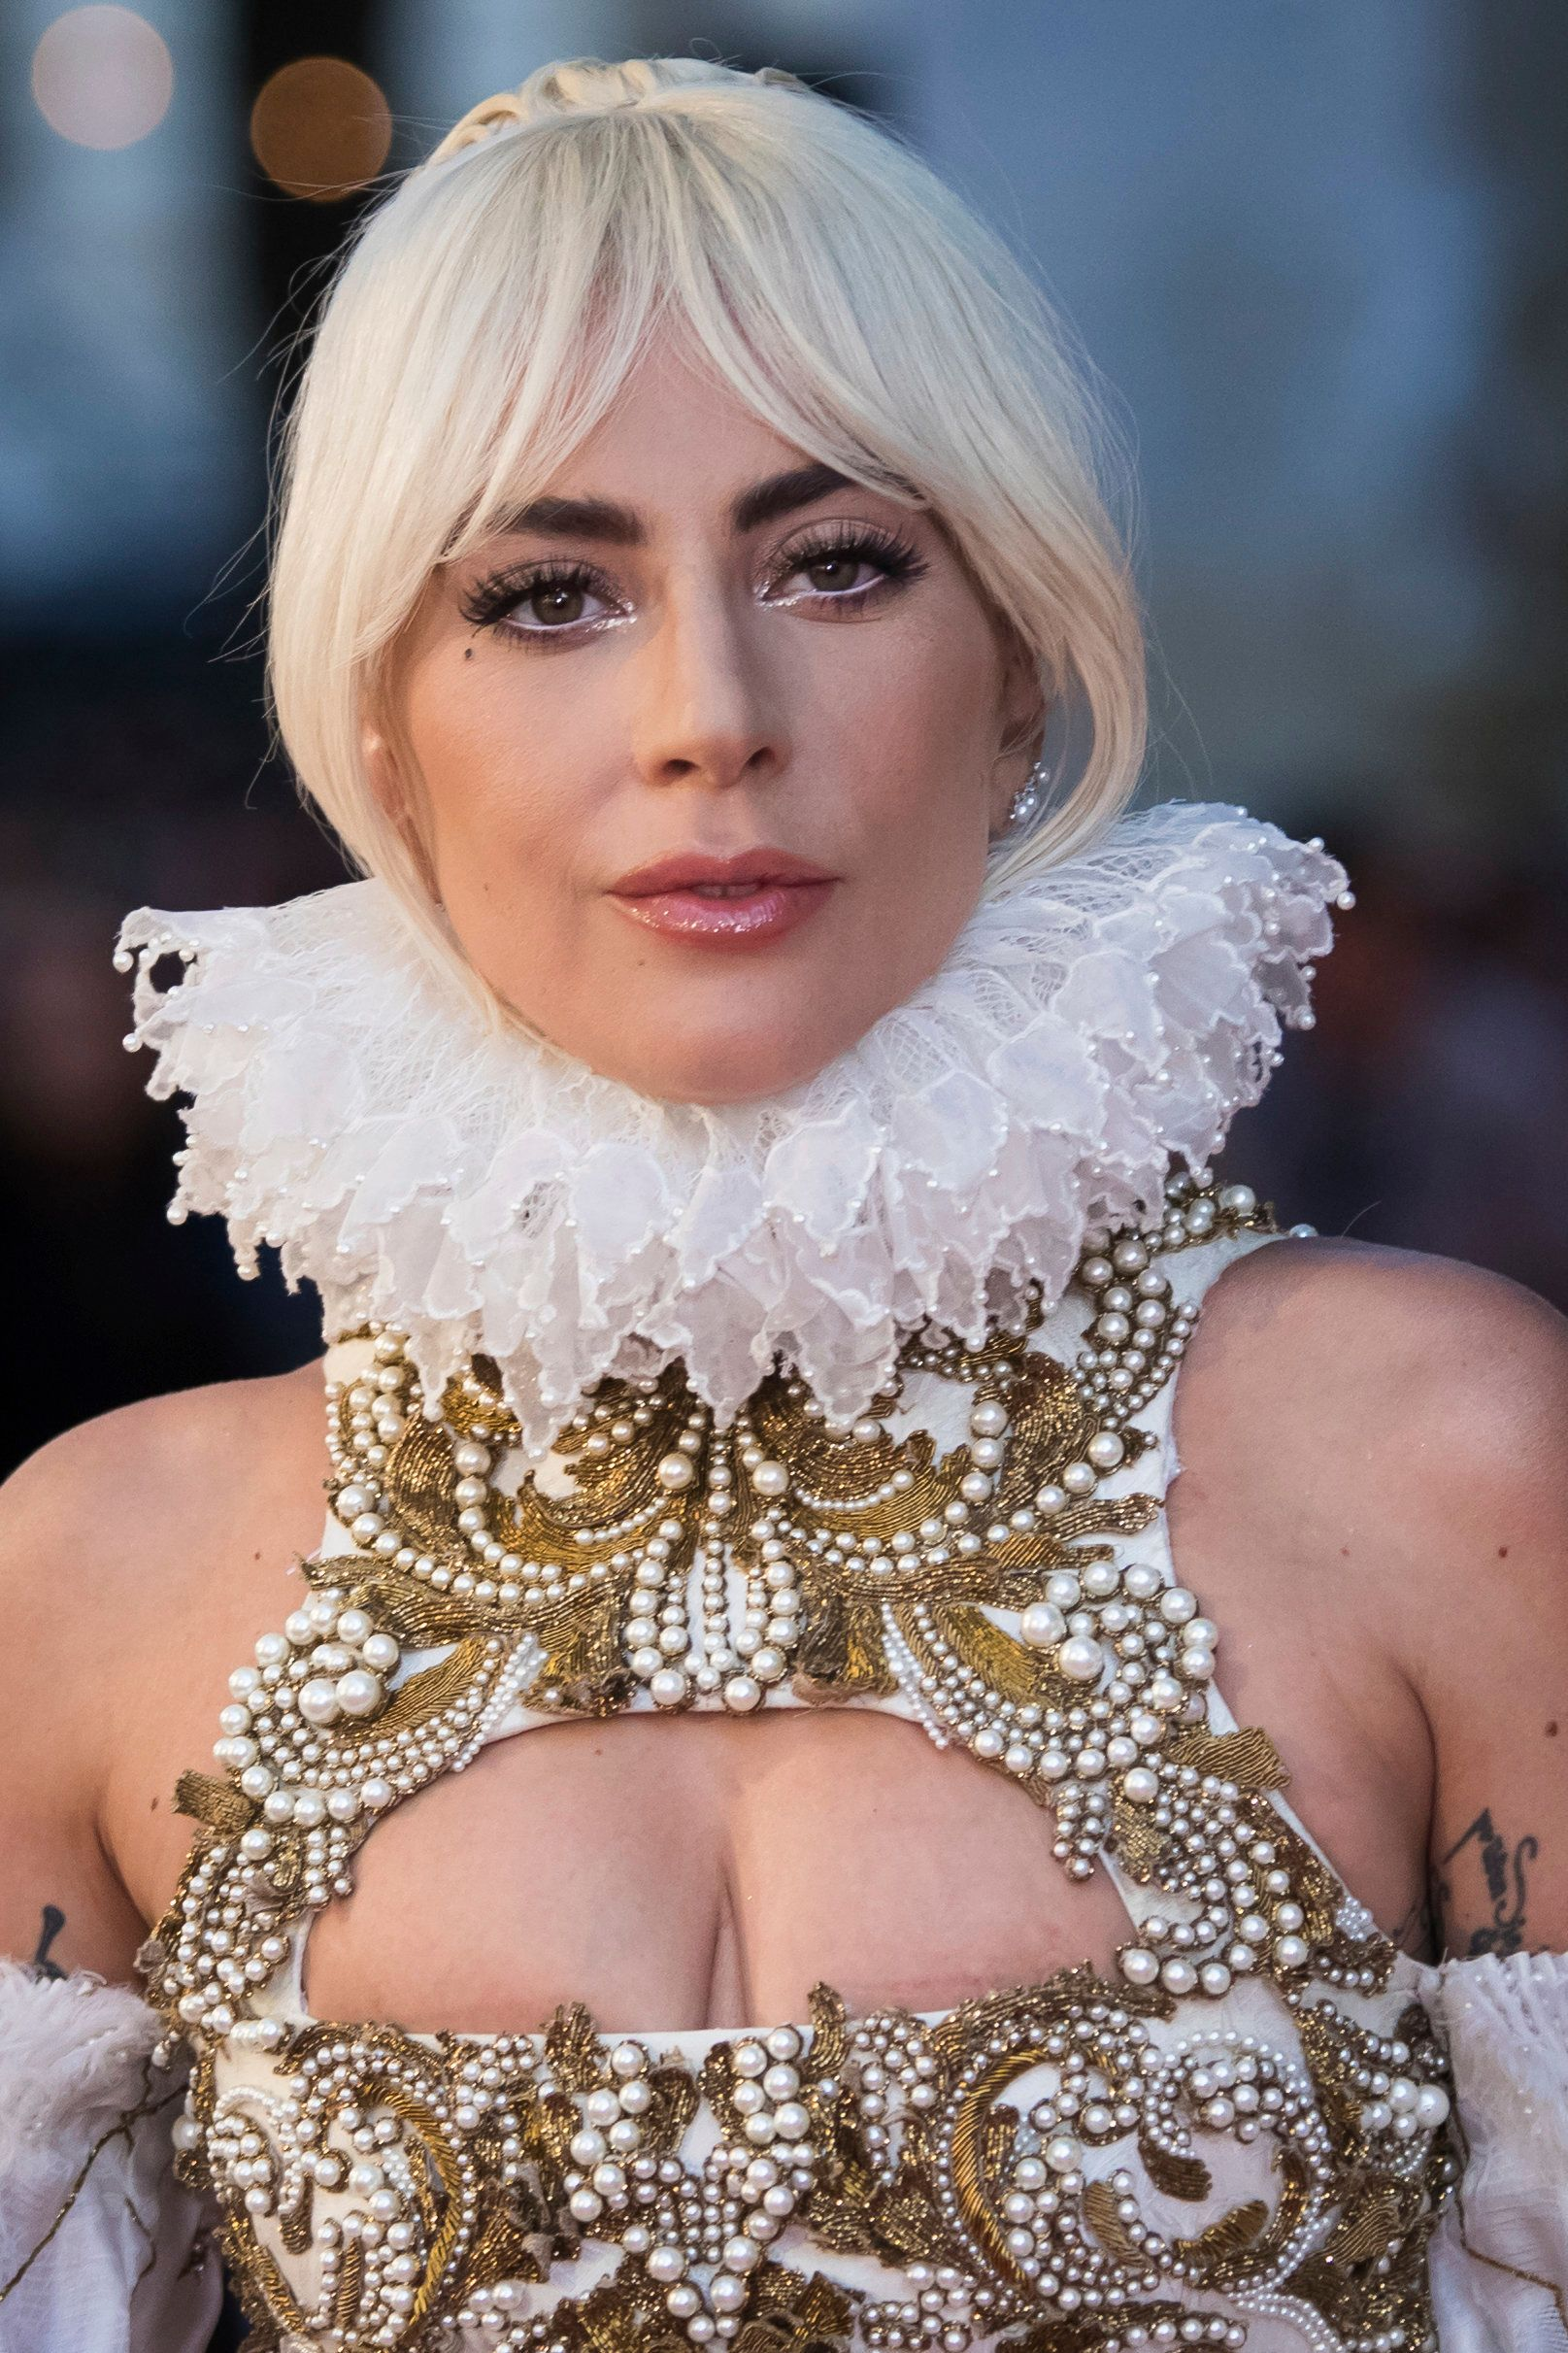 Actress and singer Lady Gaga poses for photographers upon arrival at the premiere of the film 'A Star Is Born' in London, Thursday, Sept. 27, 2018. (Photo by Vianney Le Caer/Invision/AP)